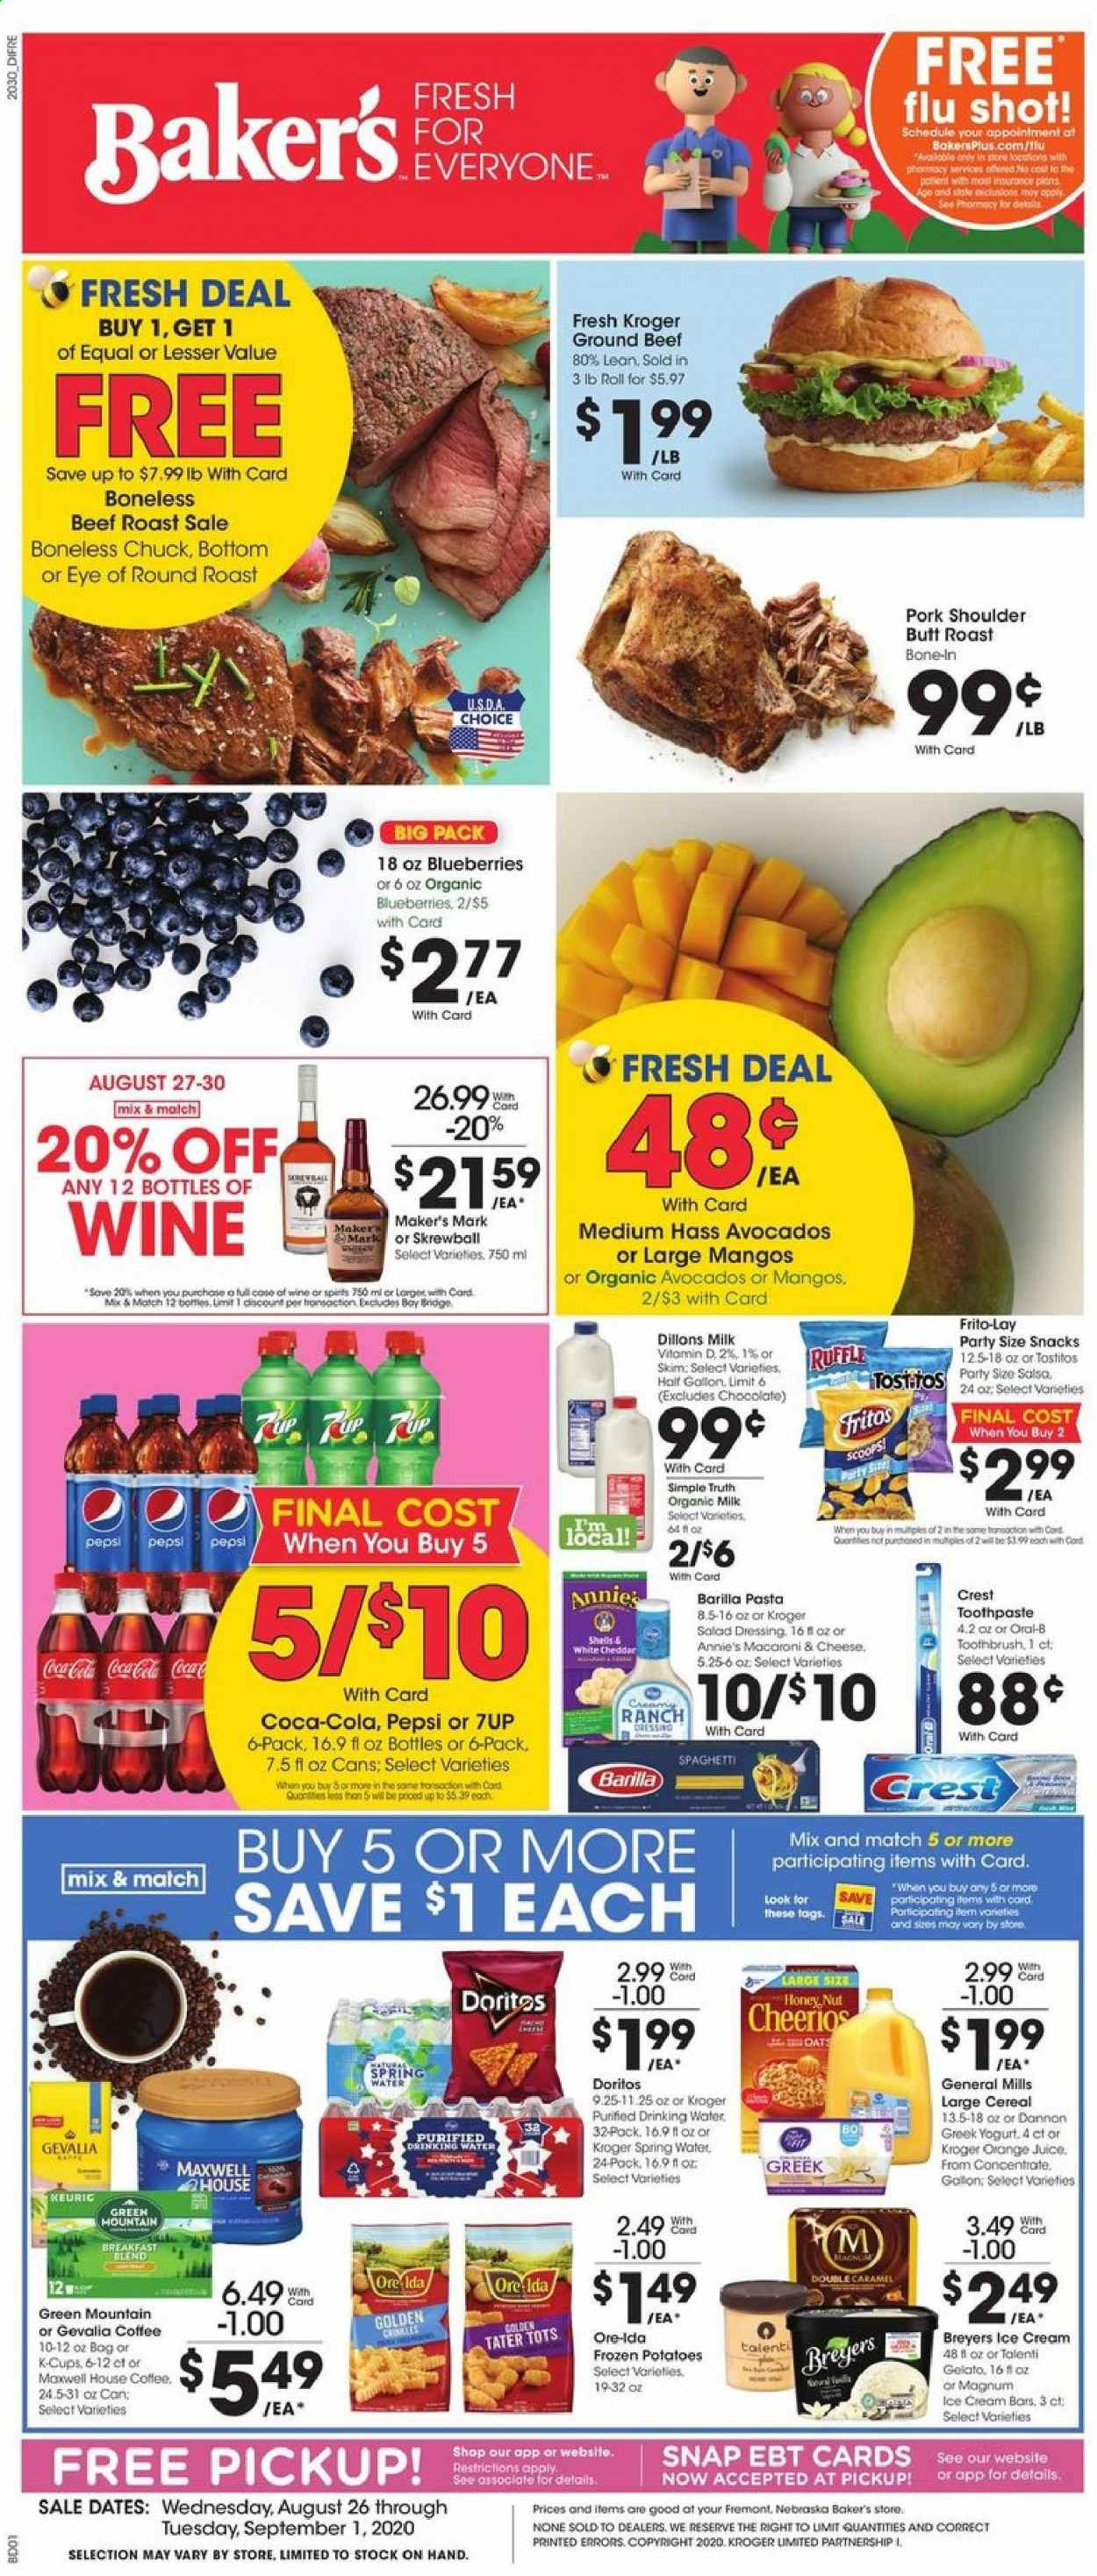 Baker's Flyer - 08.26.2020 - 09.01.2020 - Sales products - avocado, beef meat, beef roast, blueberries, caramel, cereals, Coca-Cola, cod, Doritos, Fritos, frozen, greek yogurt, ground beef, macaroni & cheese, Magnum, mango, Maxwell House, spaghetti, spring water, toothbrush, honey, ice cream, ice cream bars, pork meat, pork shoulder, potatoes, cheddar, cheerios, Pepsi, orange juice, orange, Oral-b, chocolate, organic milk, cheese, juice, dressing, macaroni, toothpaste, snack, salsa, pasta, wine, spring. Page 1.